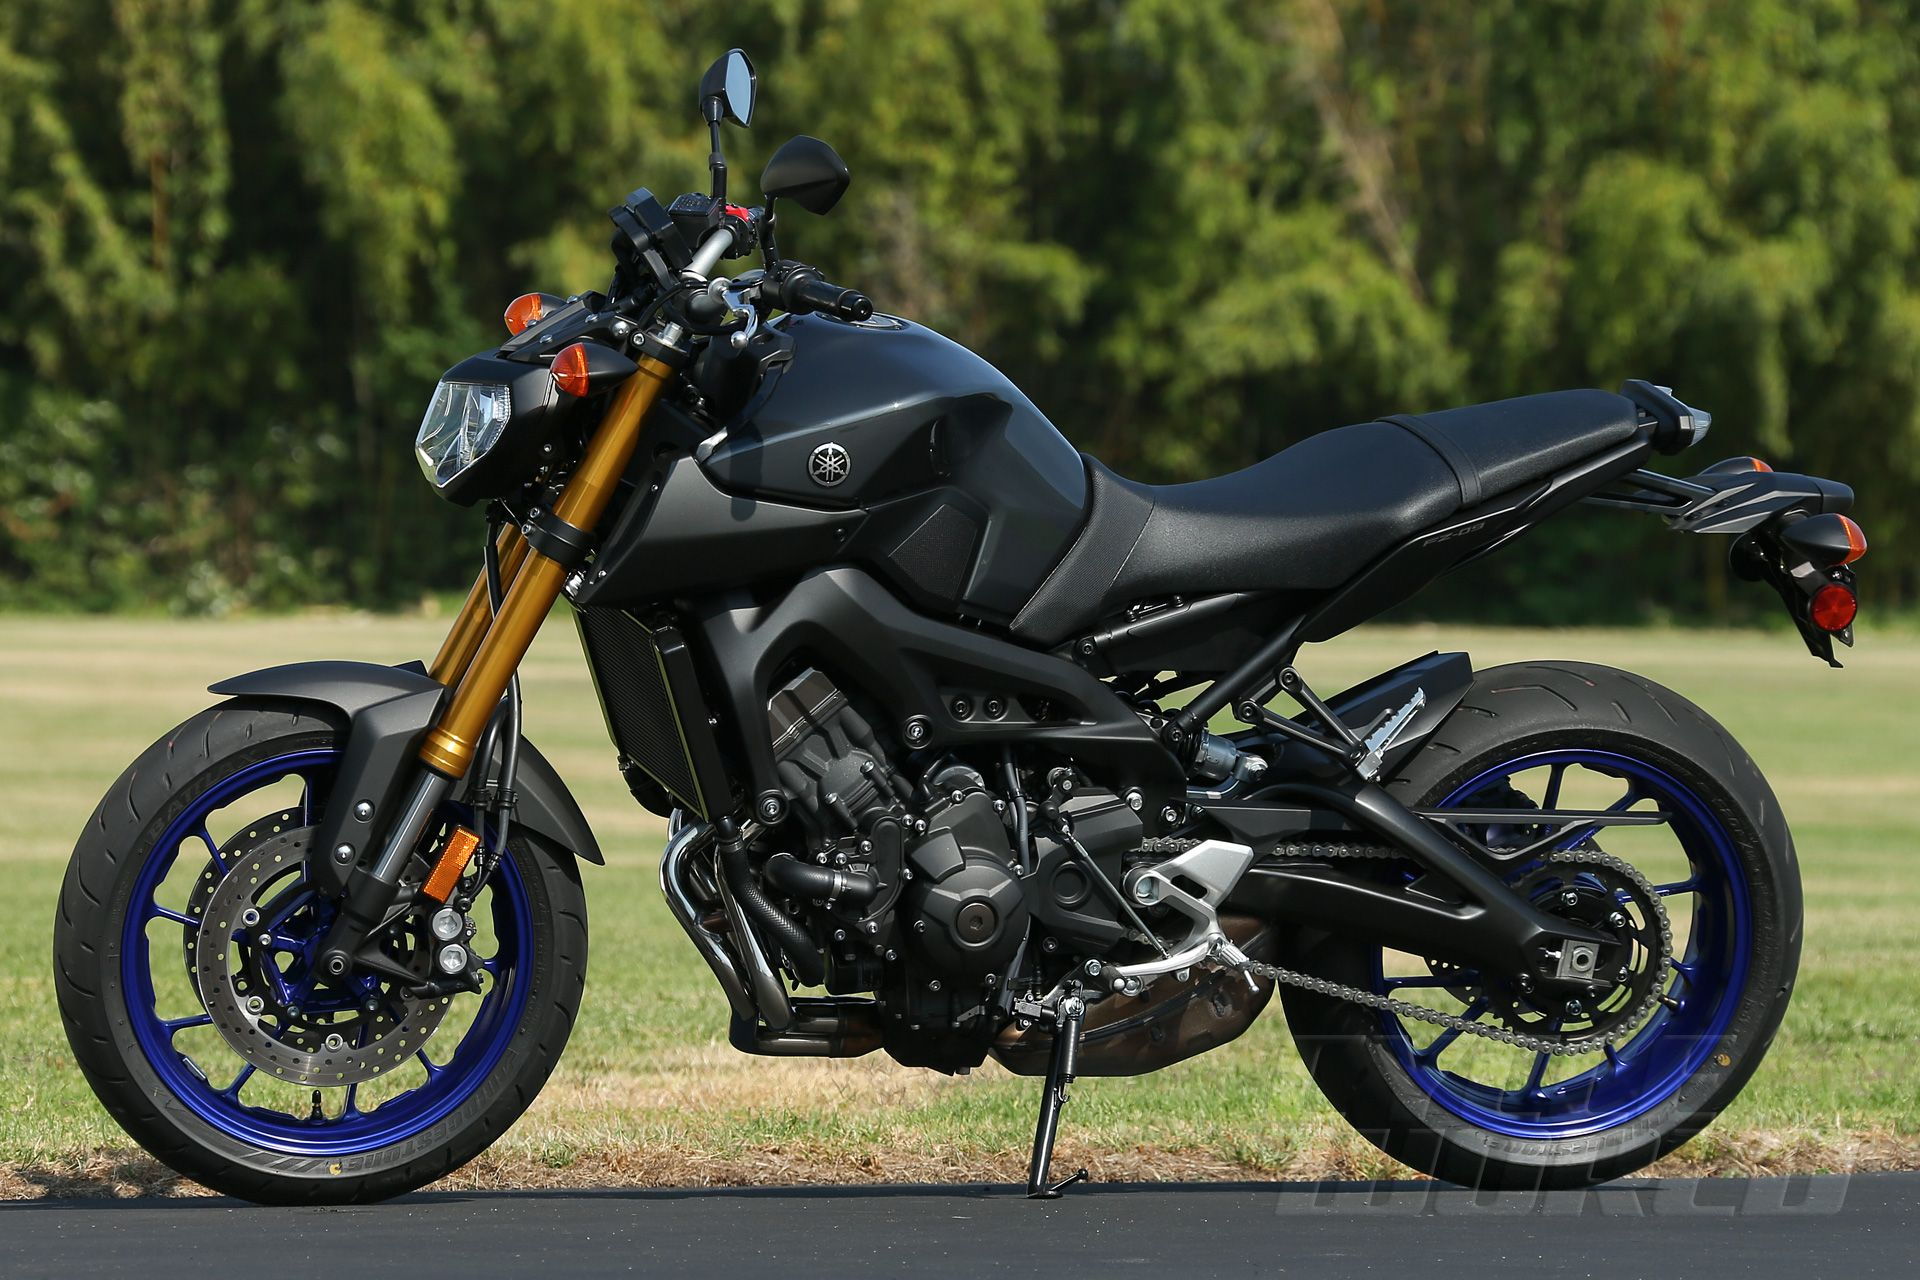 yamaha fz9 | 2014 Yamaha FZ-09 – First Look It's here! Yamaha's ...